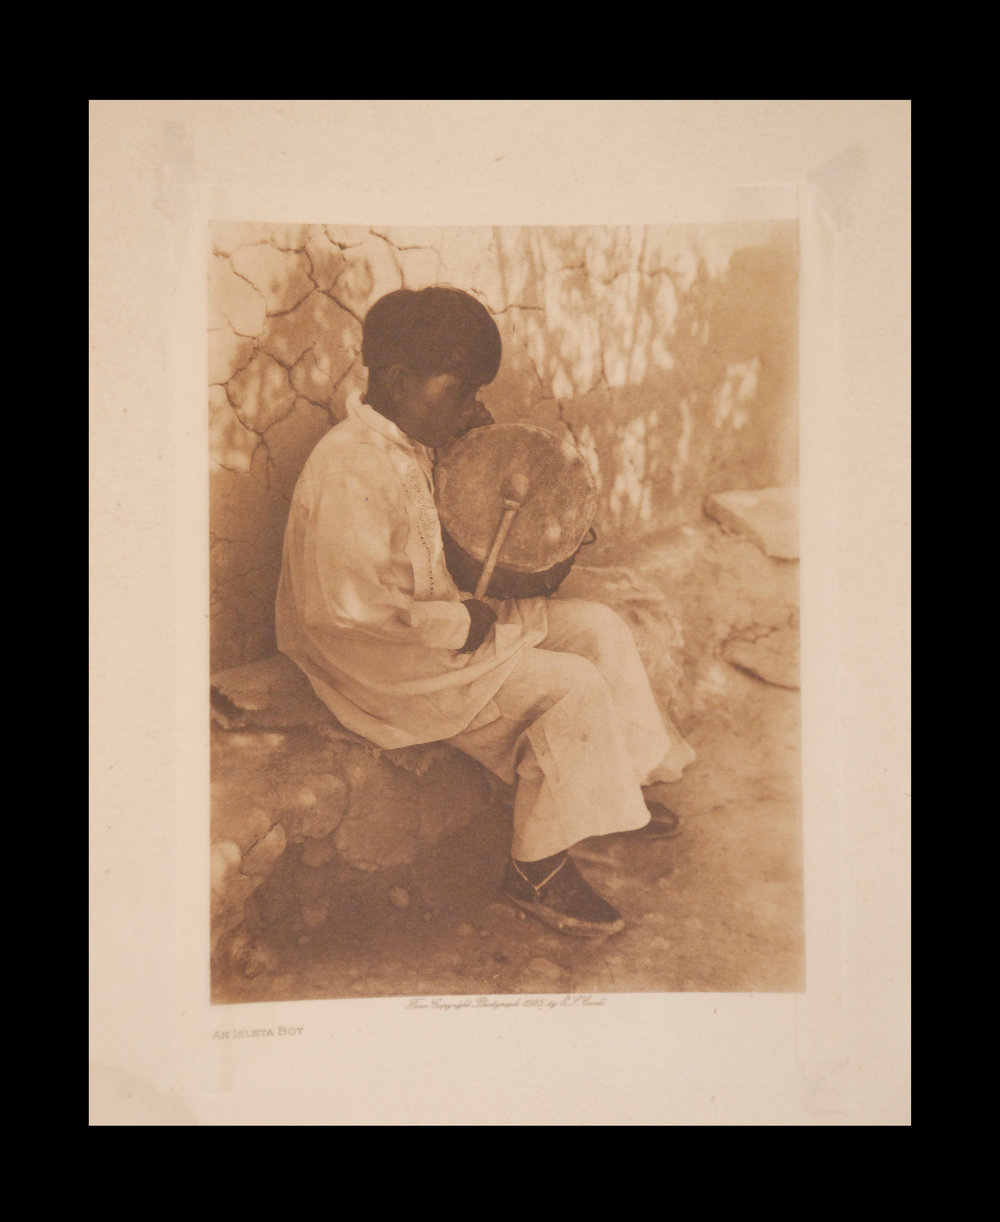 """An Isleta Boy""  1925  Vol.16         Tissue Print"